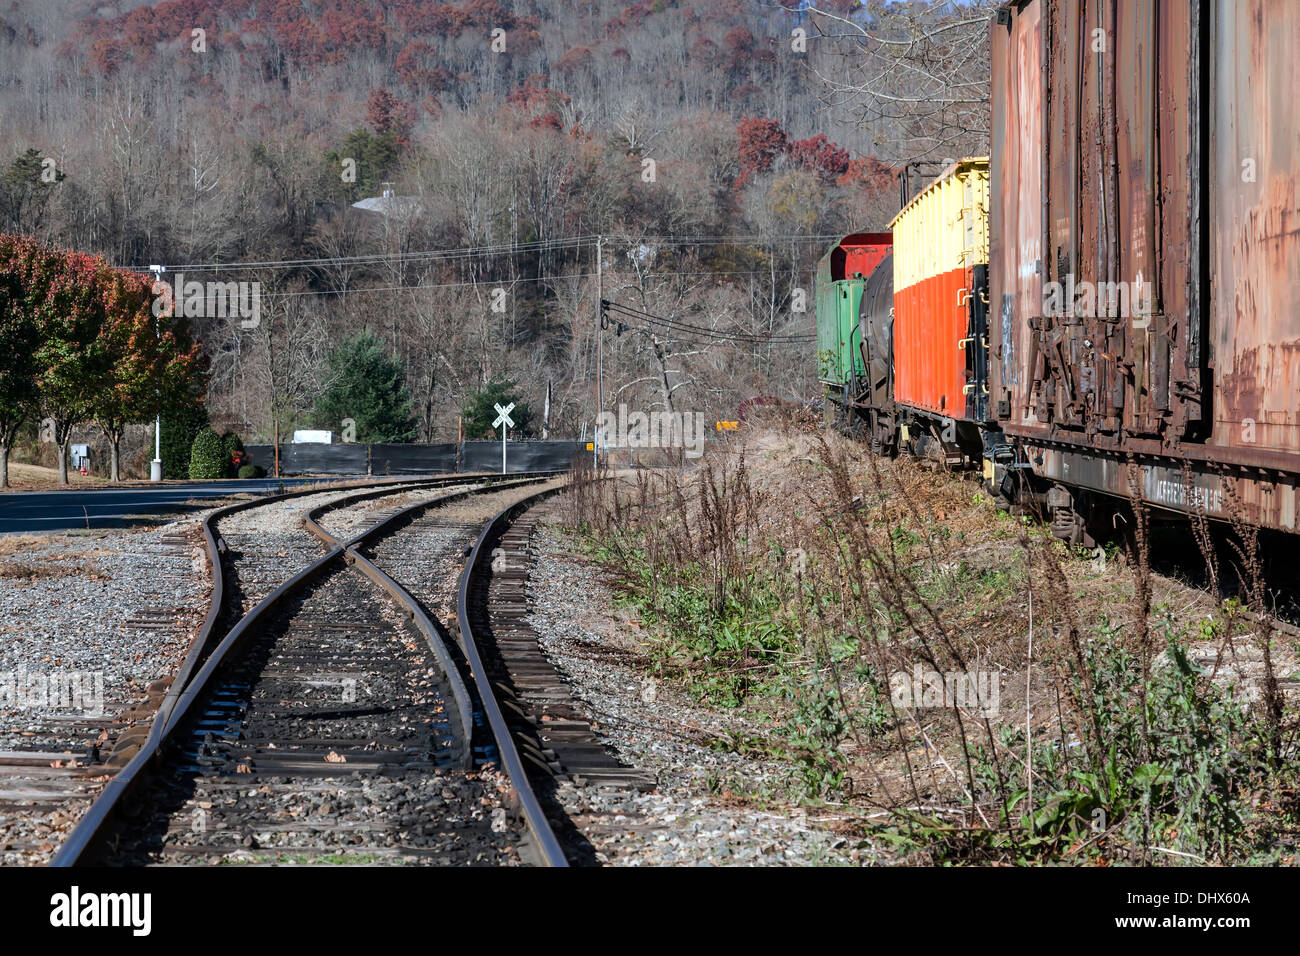 Unused railroad cars stored on a side spur in the Smoky Mountains near Dillsboro and Sylva, North Carolina, USA. - Stock Image